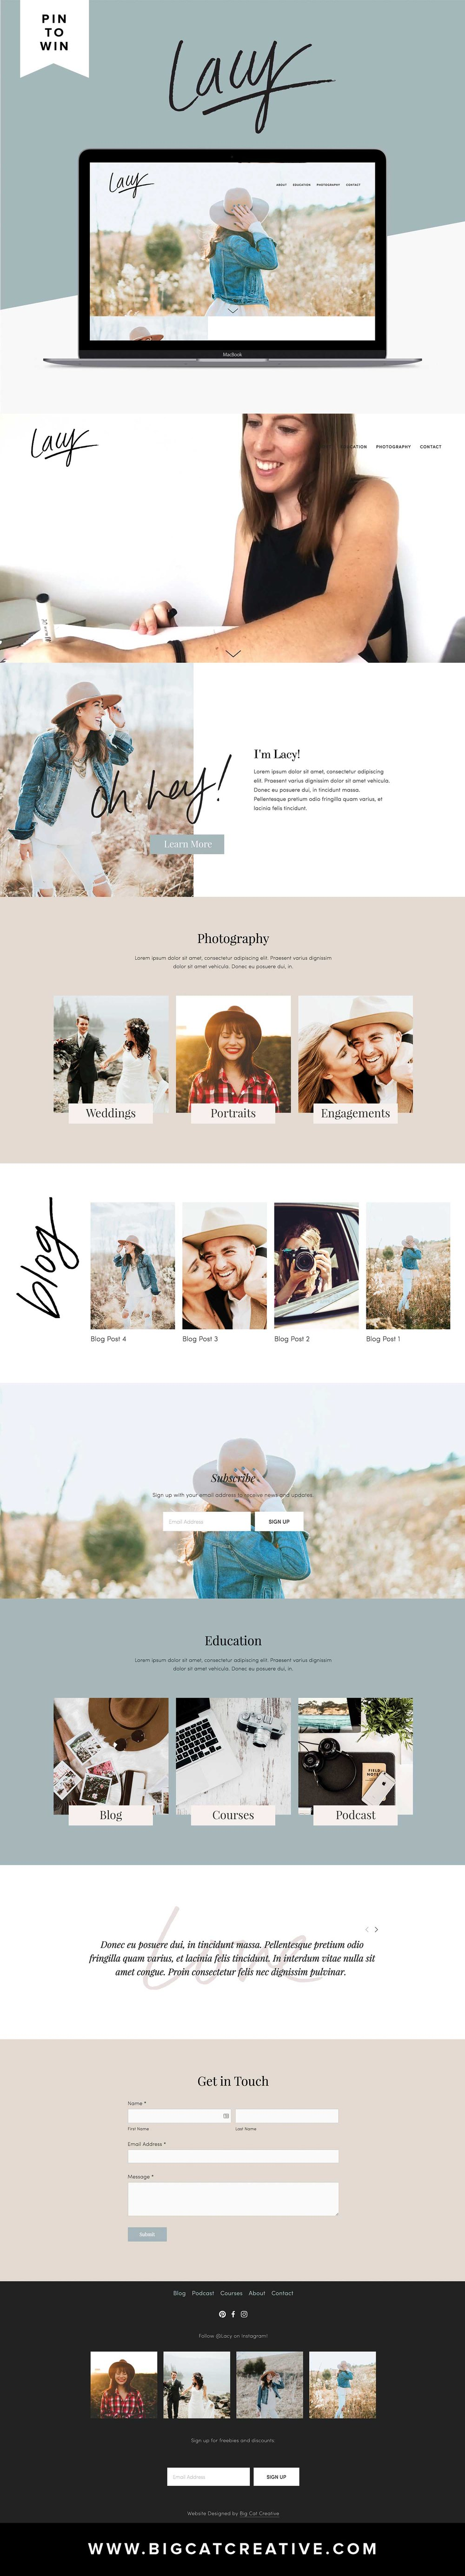 PIN IT TO WIN IT! LACY SQUARESPACE TEMPLATE IS LIVE. Lacy is gorgeous, feminine and classic. This template is perfect for a photographer of any kind, course creator, an online business, blogger or influencer. You can customize this template any way you like to suit your business. By Big Cat Creative | Squarespace Templates | Website Templates | Squarespace Design |  Squarepace Themes | Squarespace Inspiration | Squarespace Website Design Inspiration | Squarespace Blog Design | Website Design Layout | Web Design